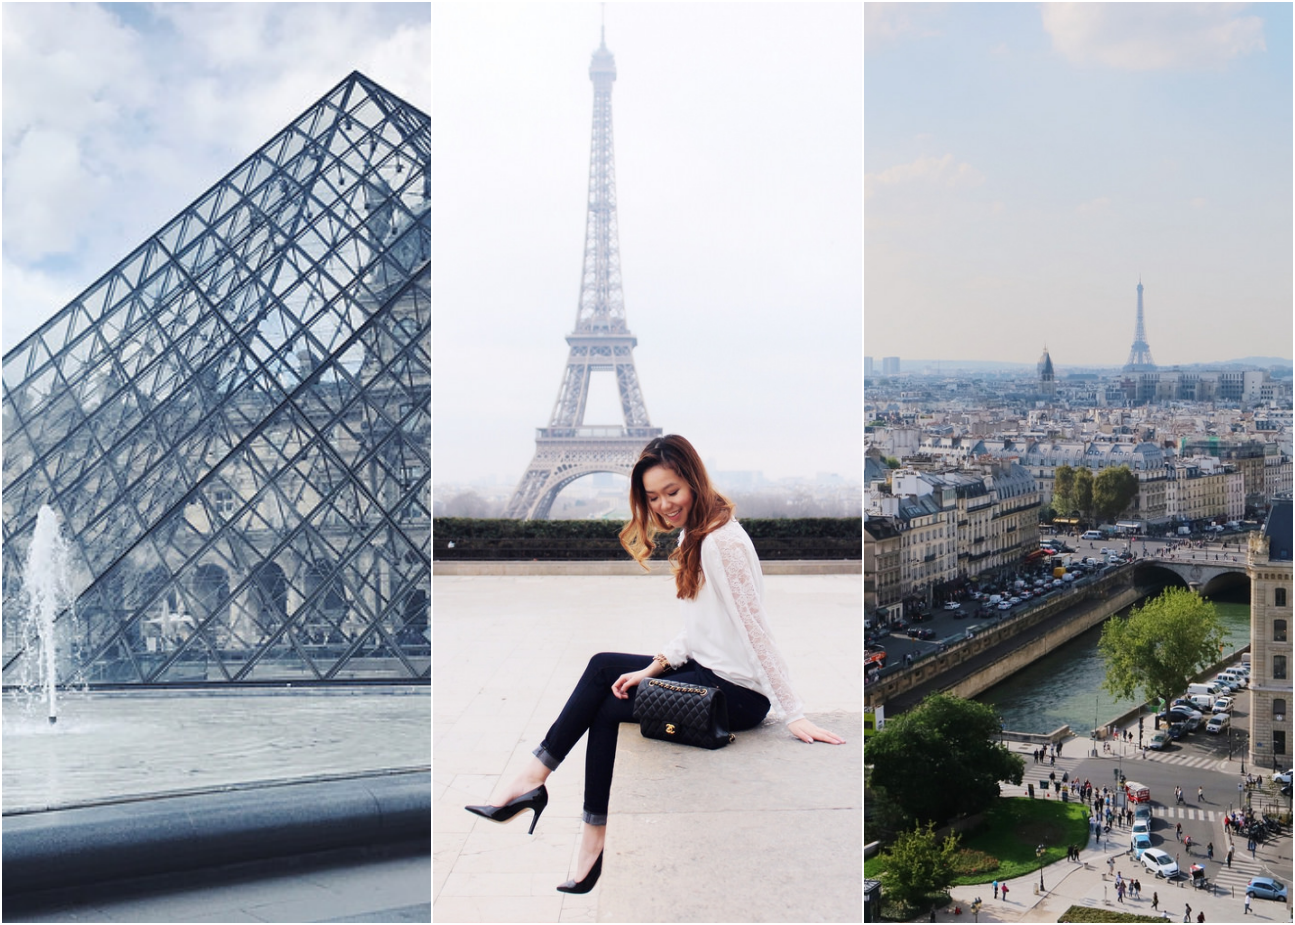 Paris In Four Months! Why I Moved To Paris For My Study Abroad Semester